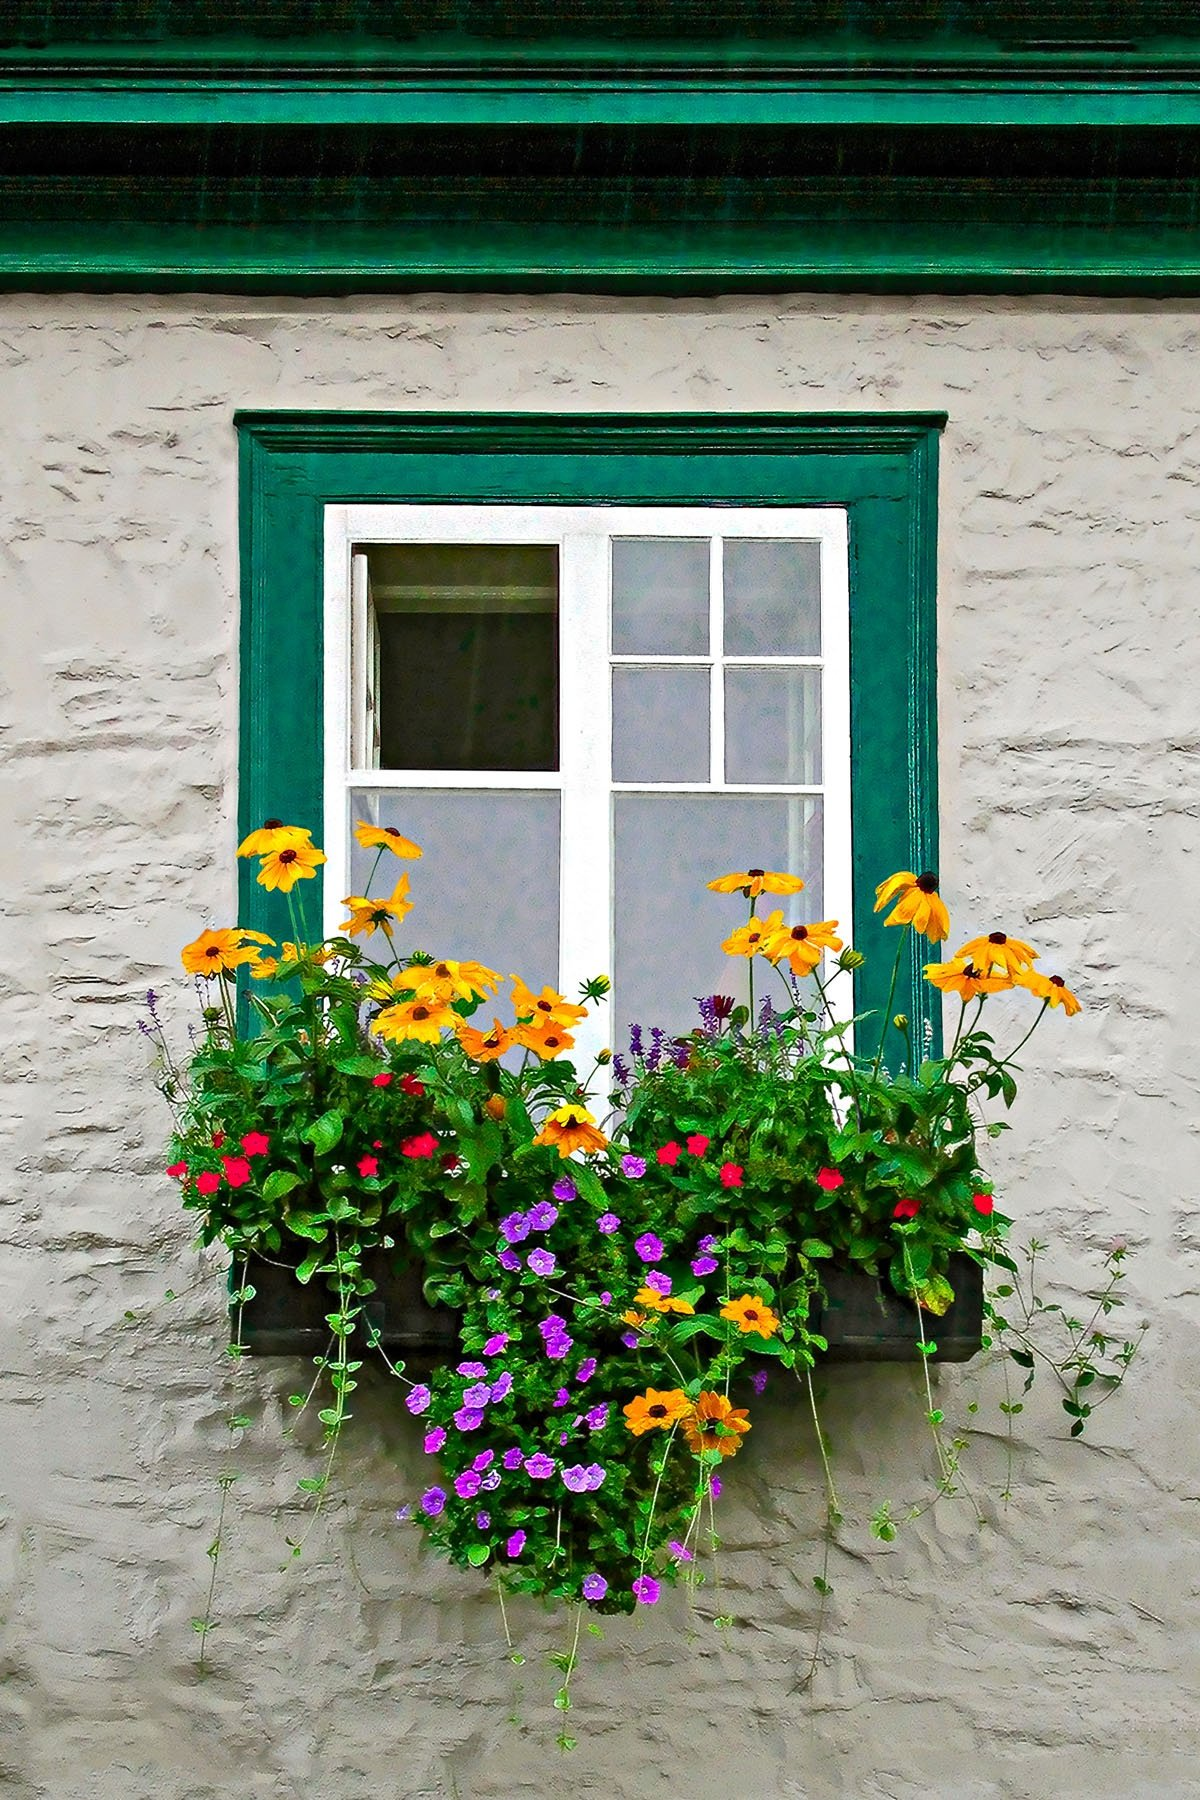 WINDOW-BOX - We saw this window as we were walking back to our car after spending a day in the rain in Quebec.  As I was about to photograph it, some one closed the window,and then saw me, opened it back up and moved aside. He must have been a photographer!